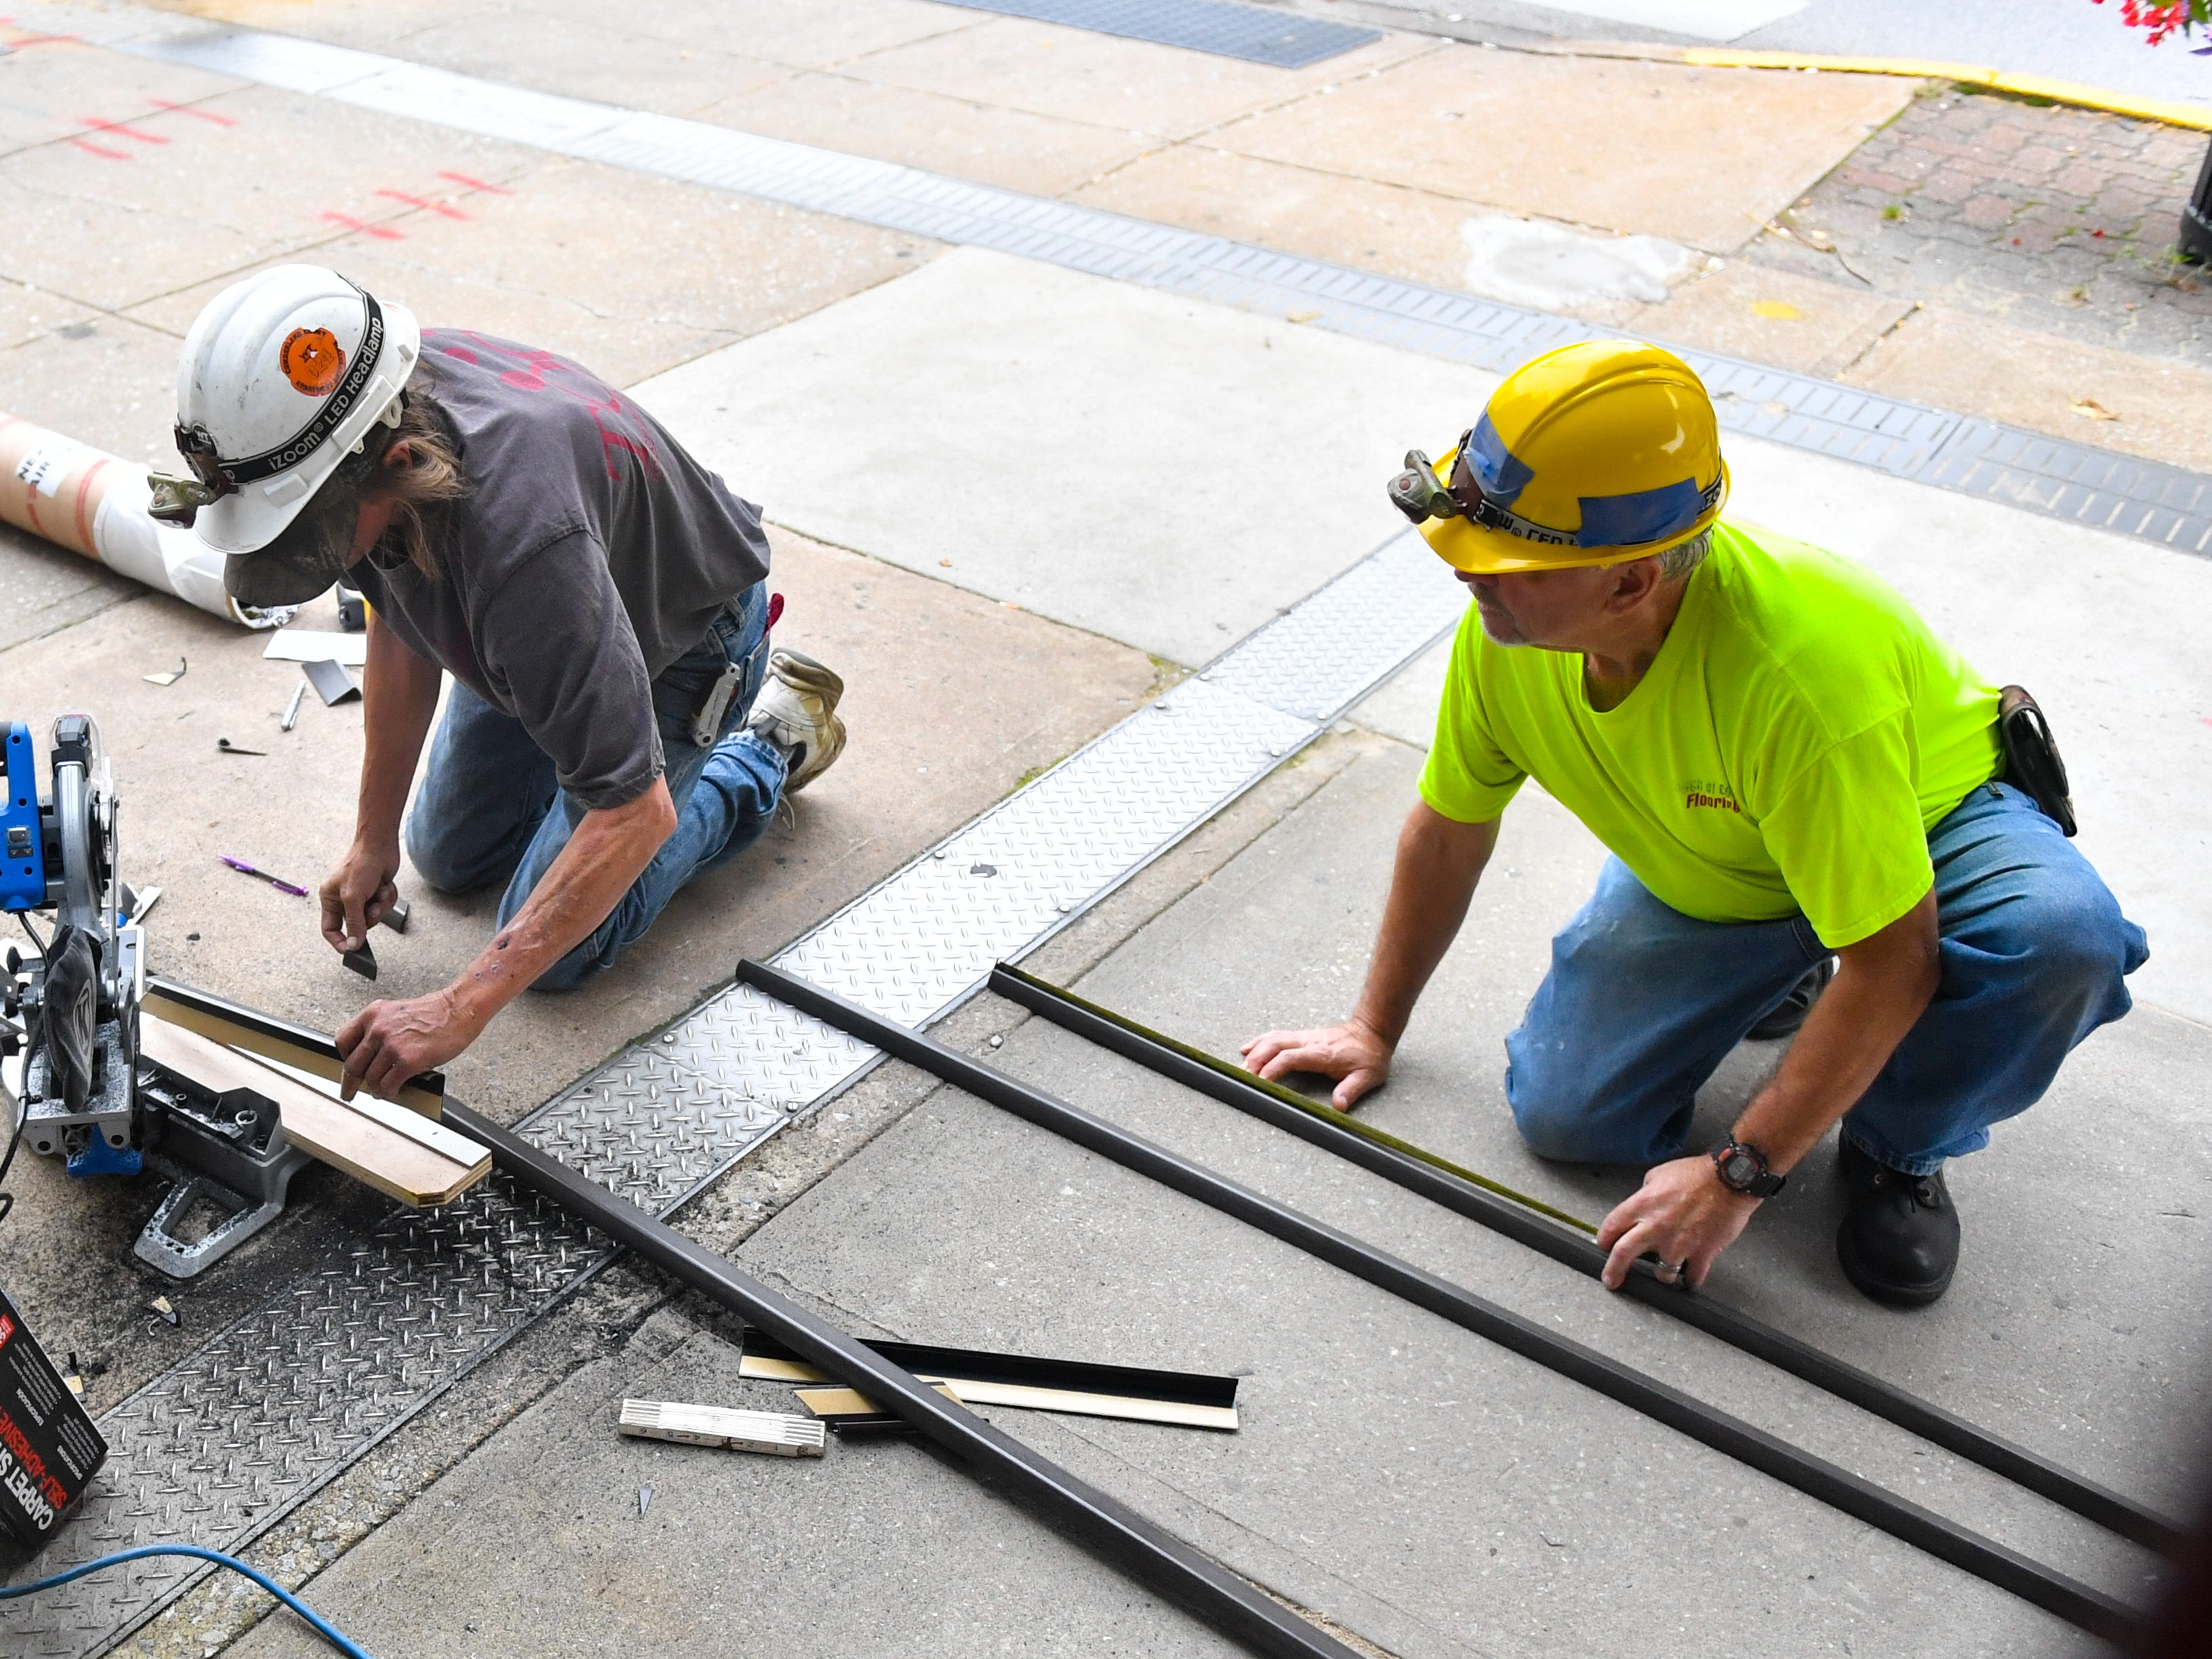 Construction workers outside cut materials use around the York Capital Theatre, October 5, 2018. The theatre is located at 50 N. George St. in downtown York.